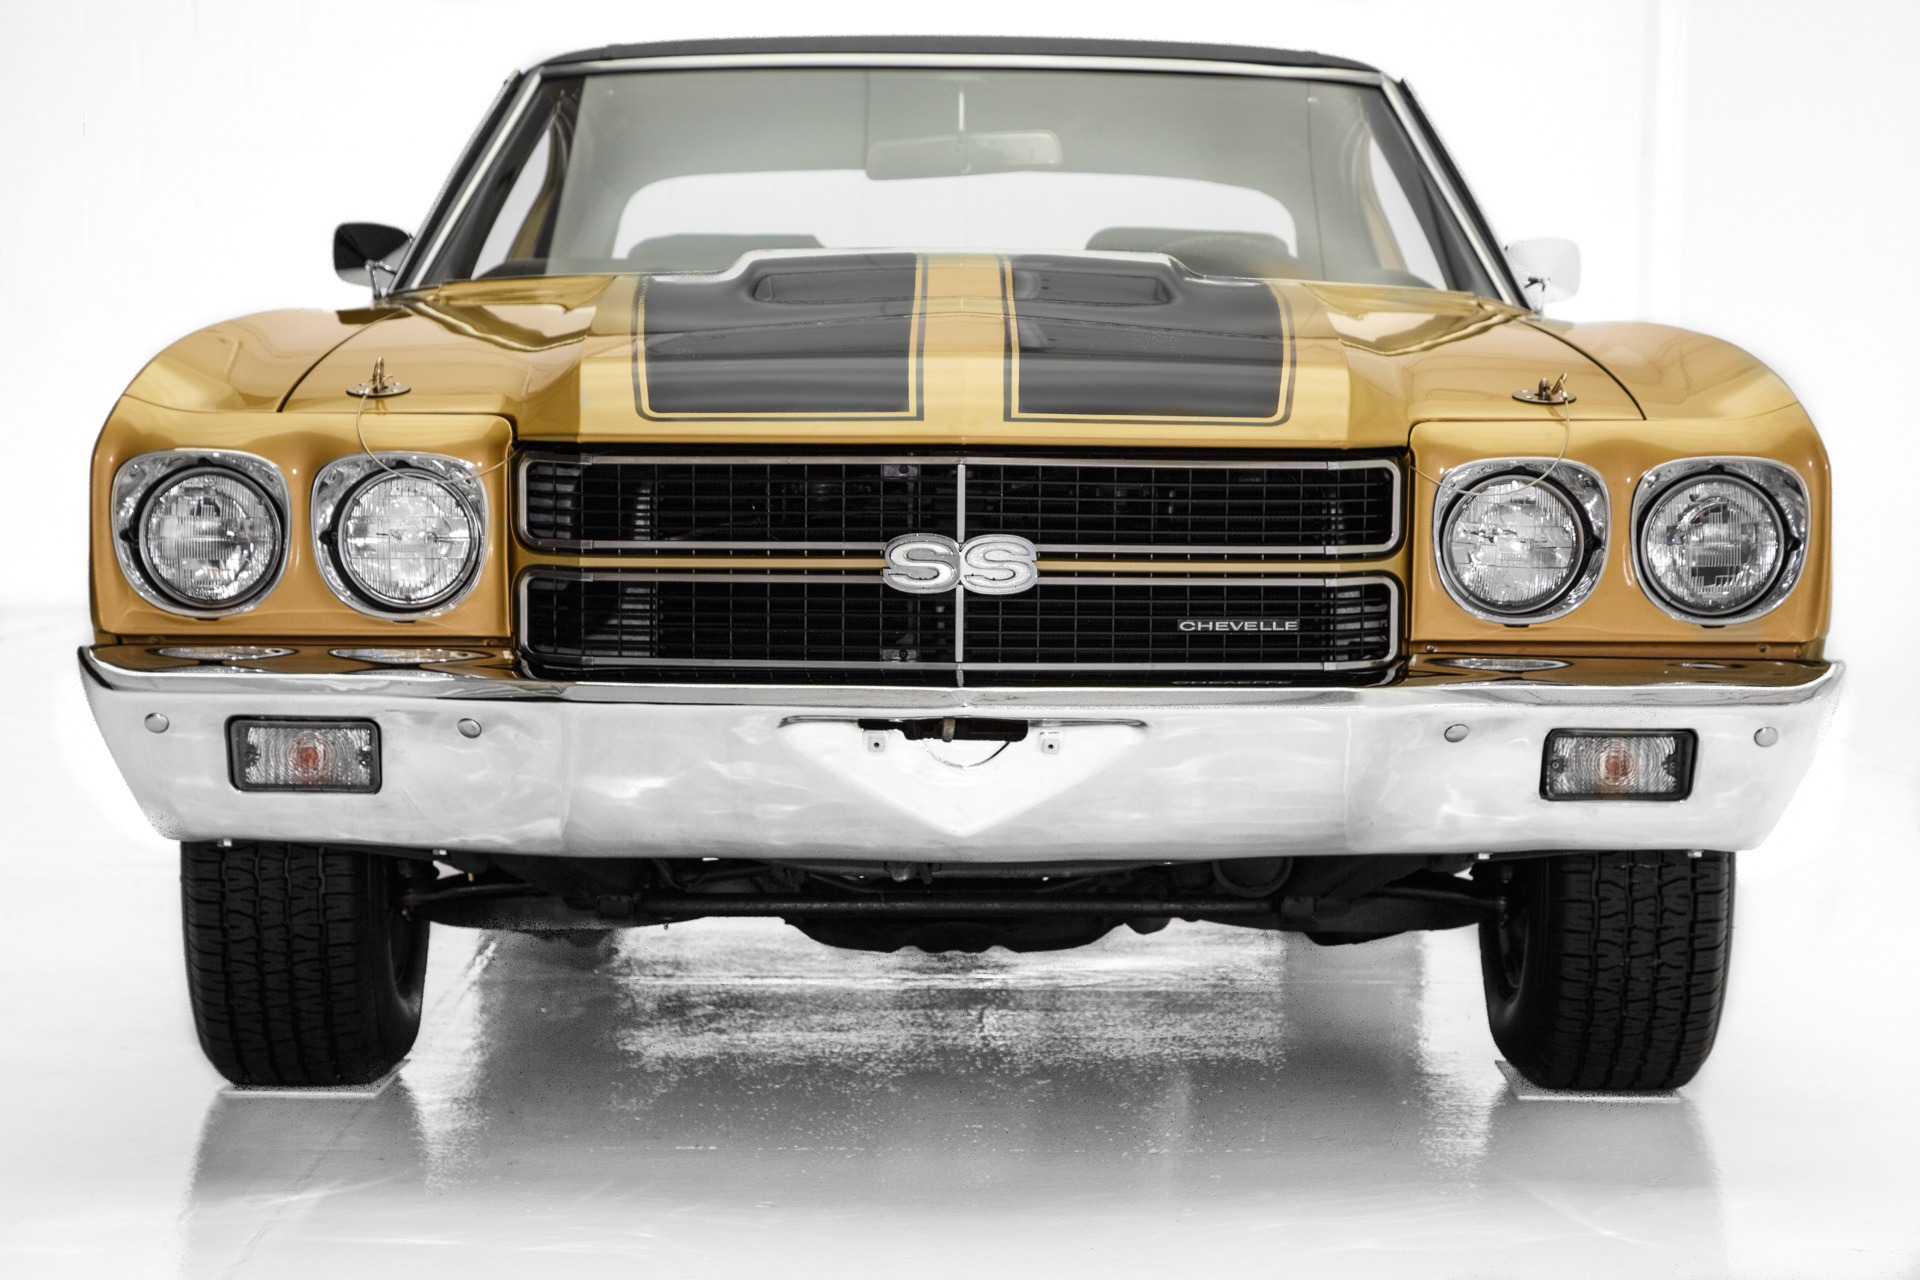 1970 Chevrolet Chevelle True SS #\'s Matching 396 - American Dream ...